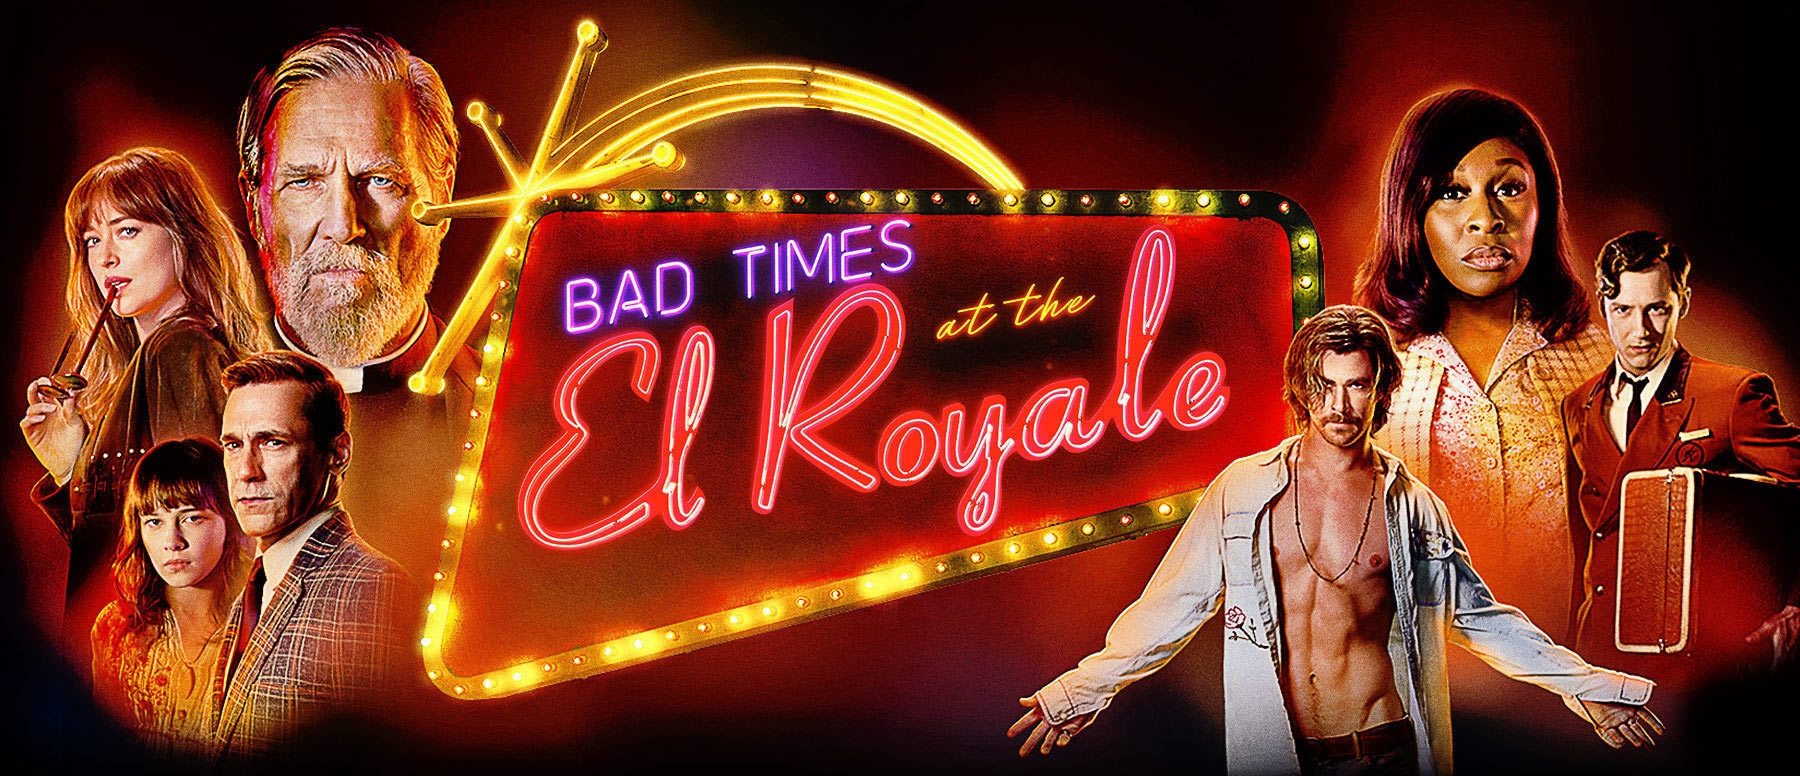 Bad Times at the El Royale Hero